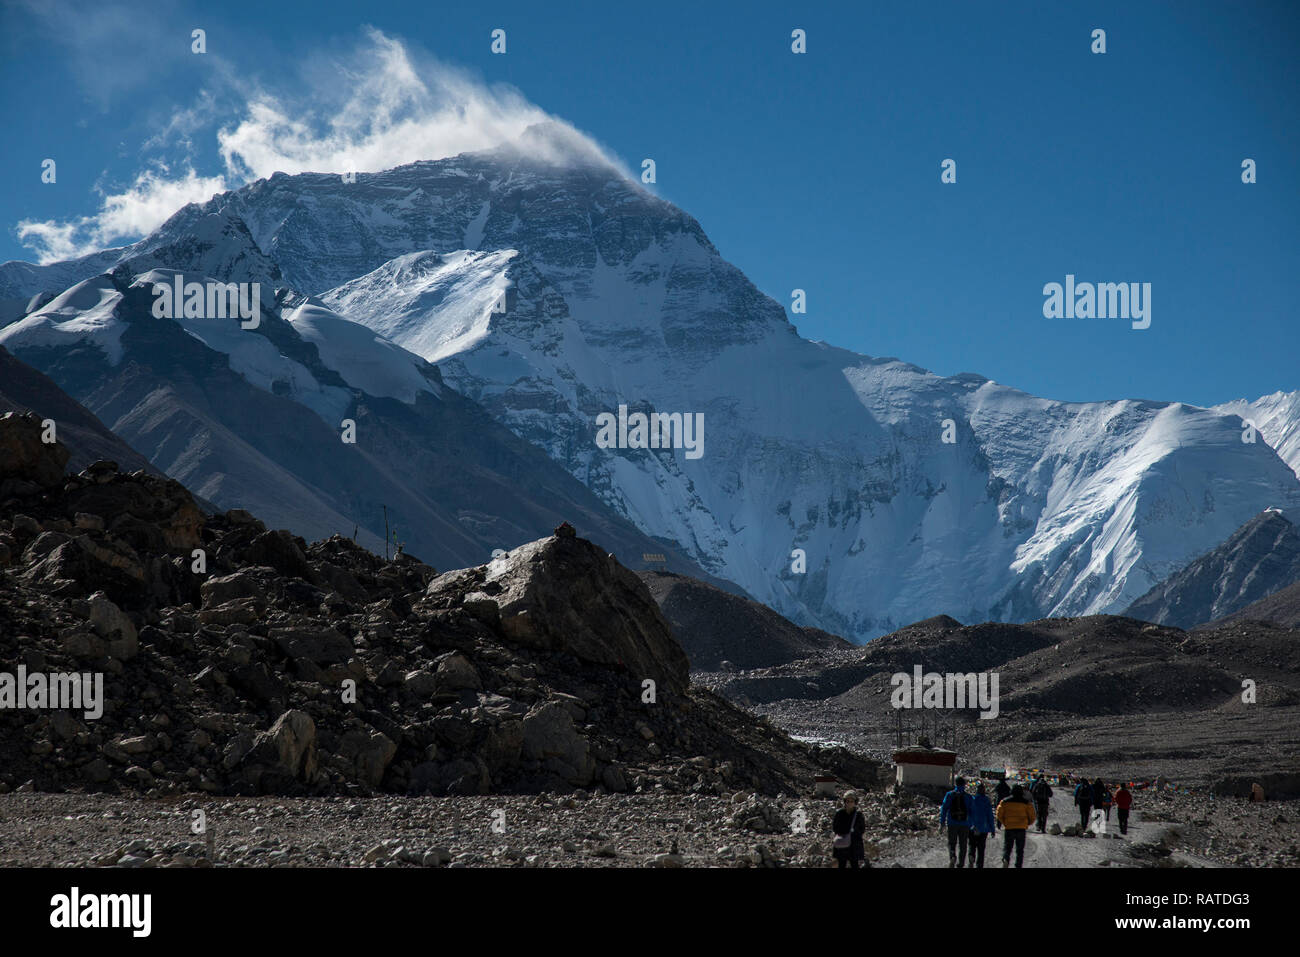 Mt Everest viewed from road leading to the base camp used by climbers - Stock Image